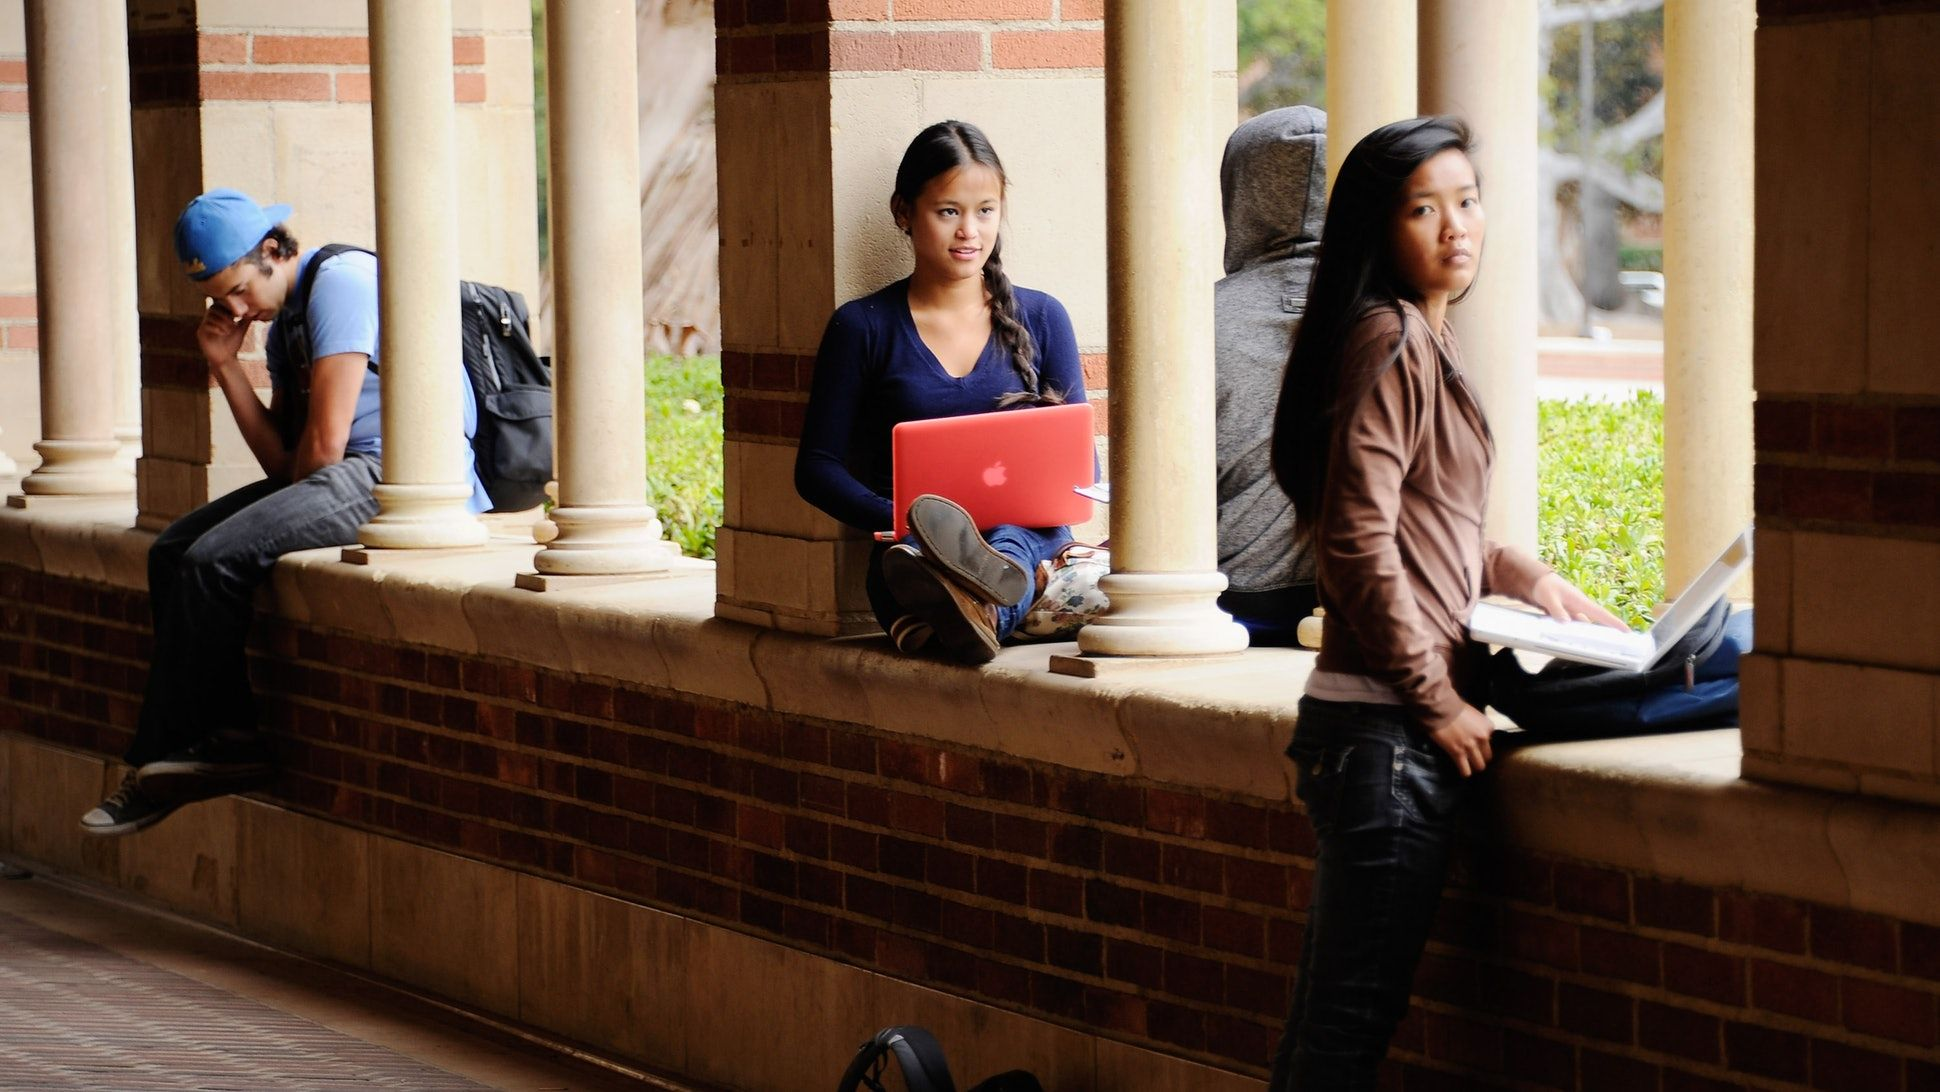 10 Things Freshmen Should Know Before College